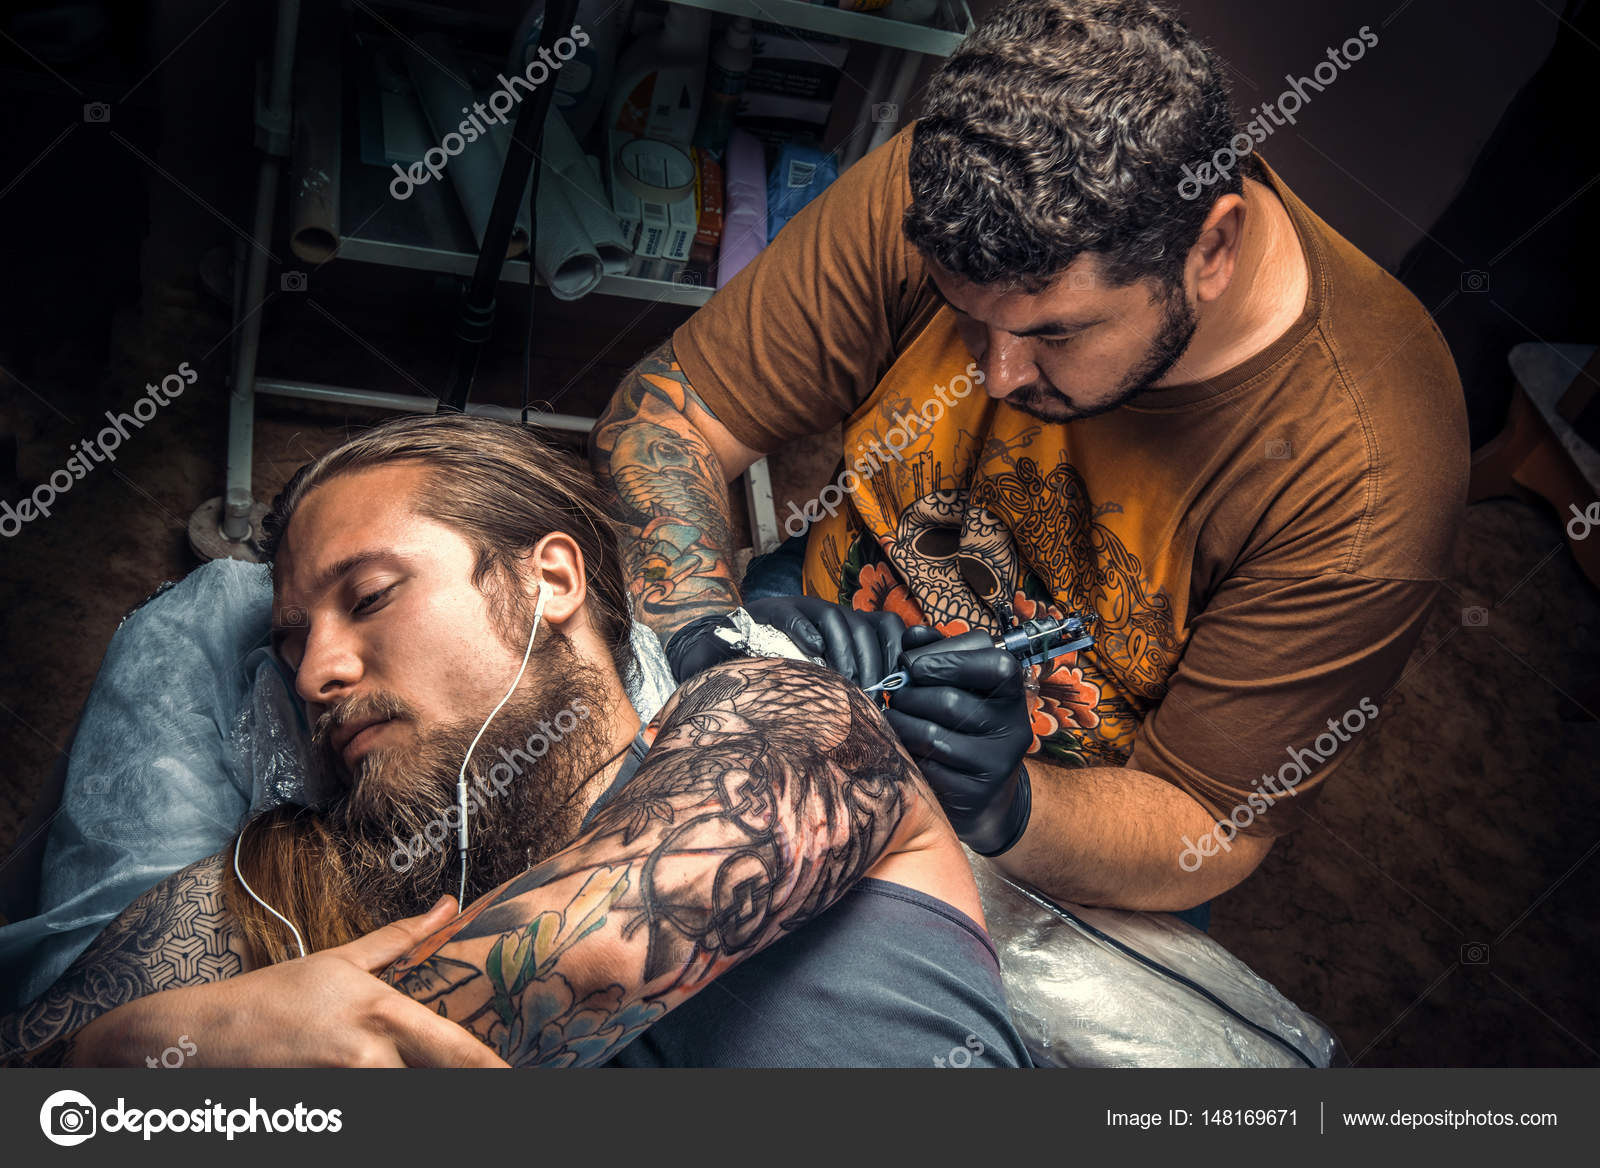 depositphotos_148169671-stock-photo-tattoo-master-posing-in-tattoo.jpg